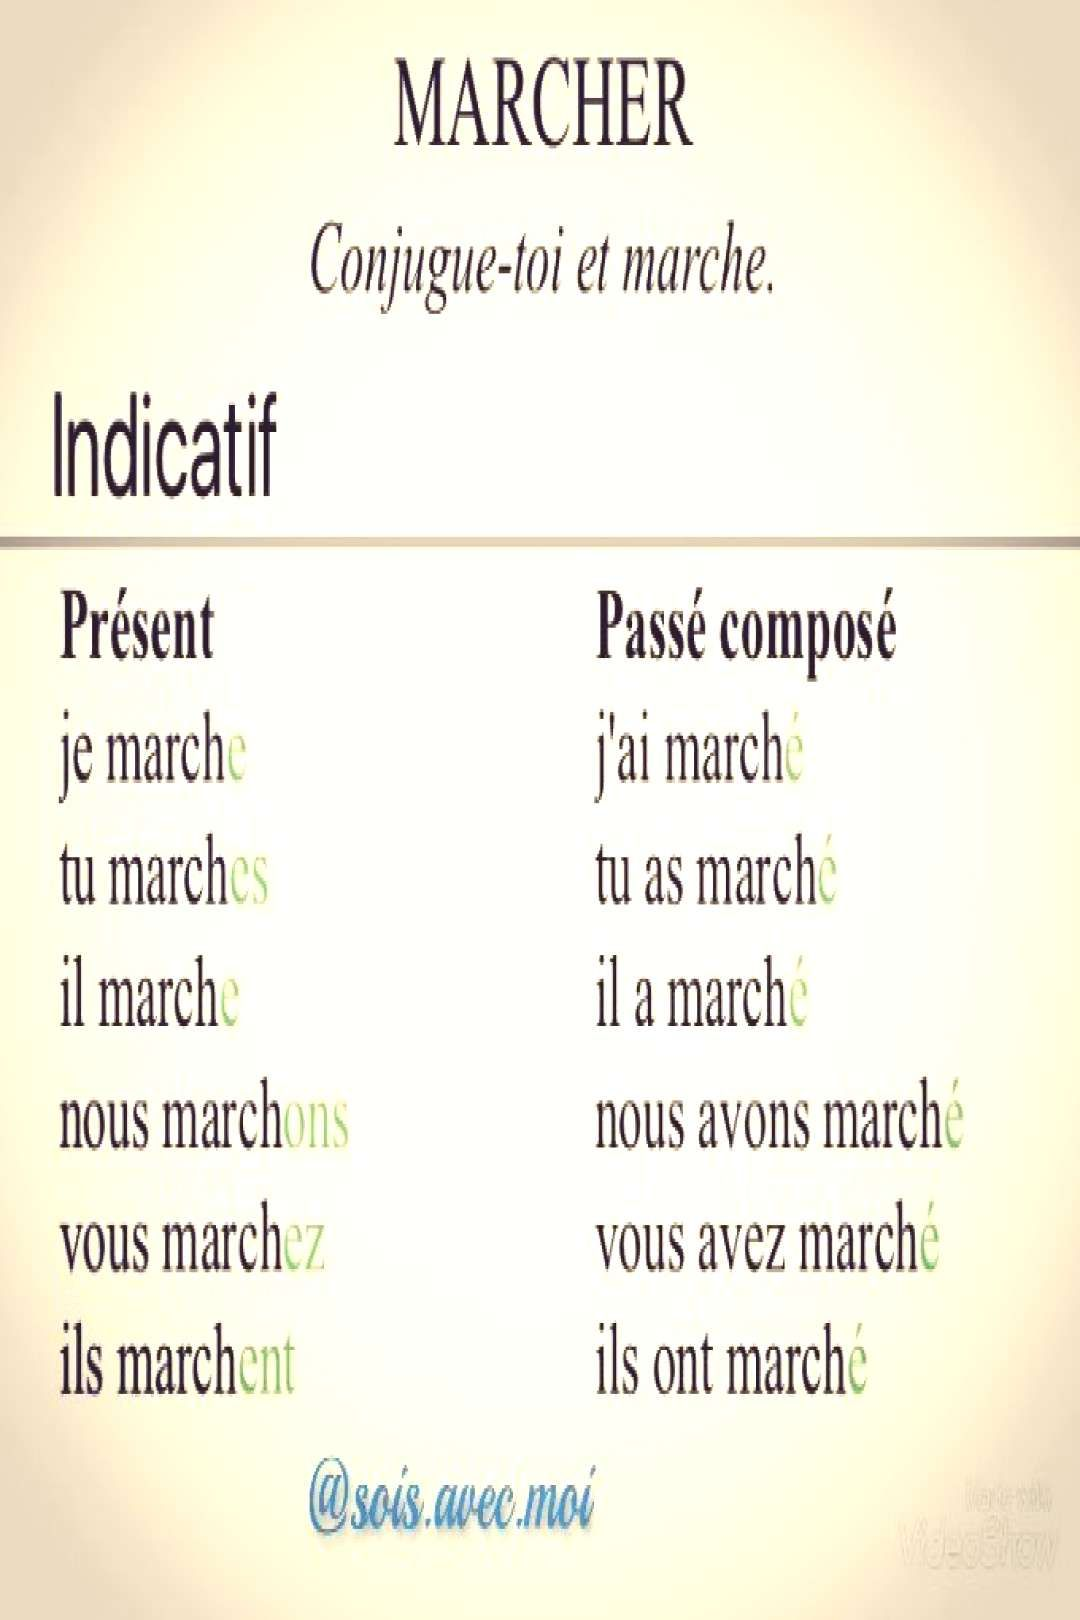 Teachingfrench Conjugaison Marcher Verbe Du Mo Conjugaison Du Verbe Marcher راه رفتن قدم زدن Moyou Can Find Teaching French And More On Our Website Con